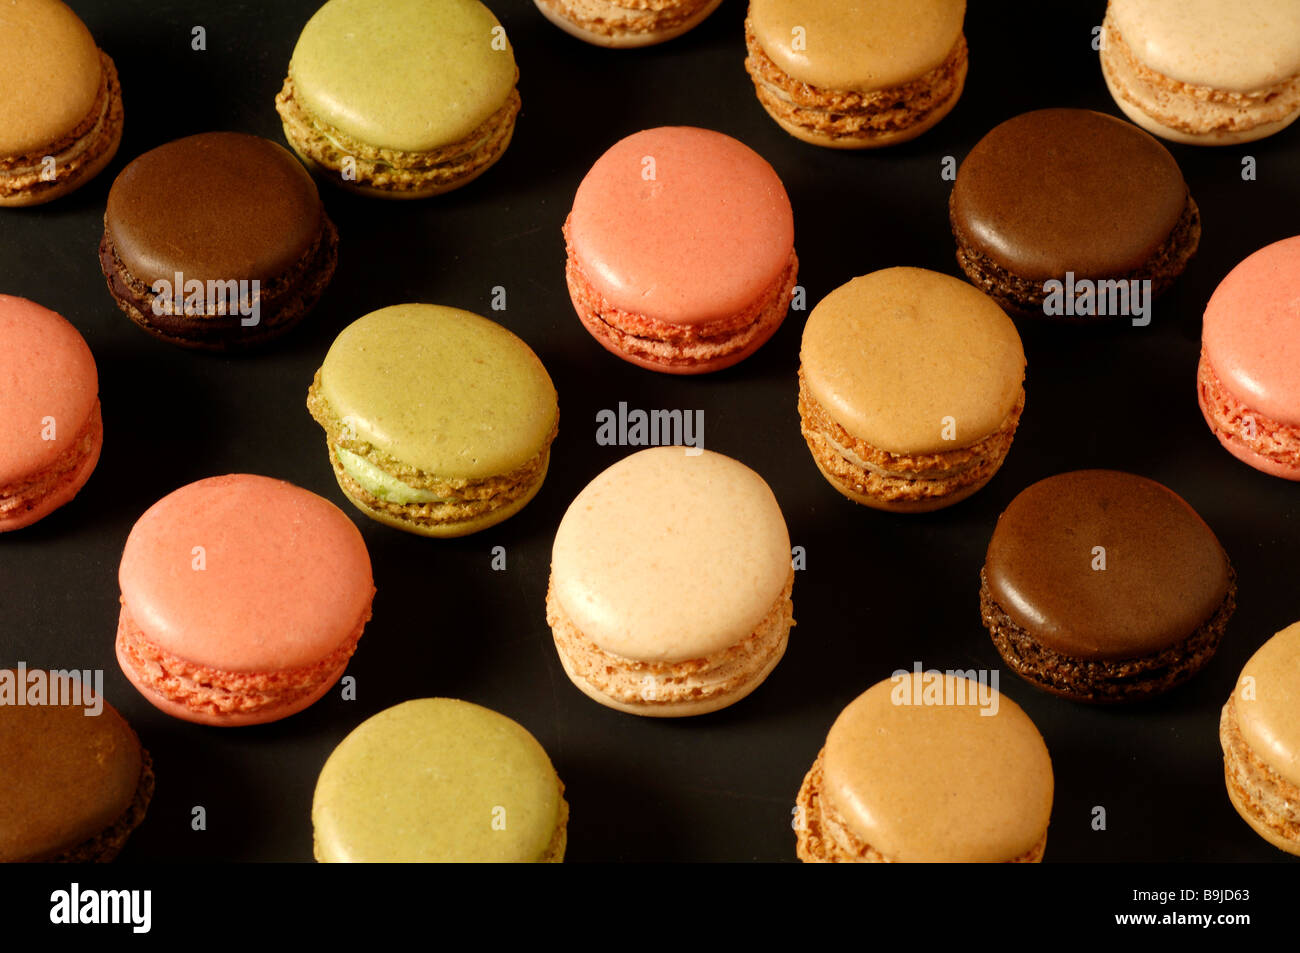 Colored macaroons, La Baroche, Alsace, France, Europe - Stock Image